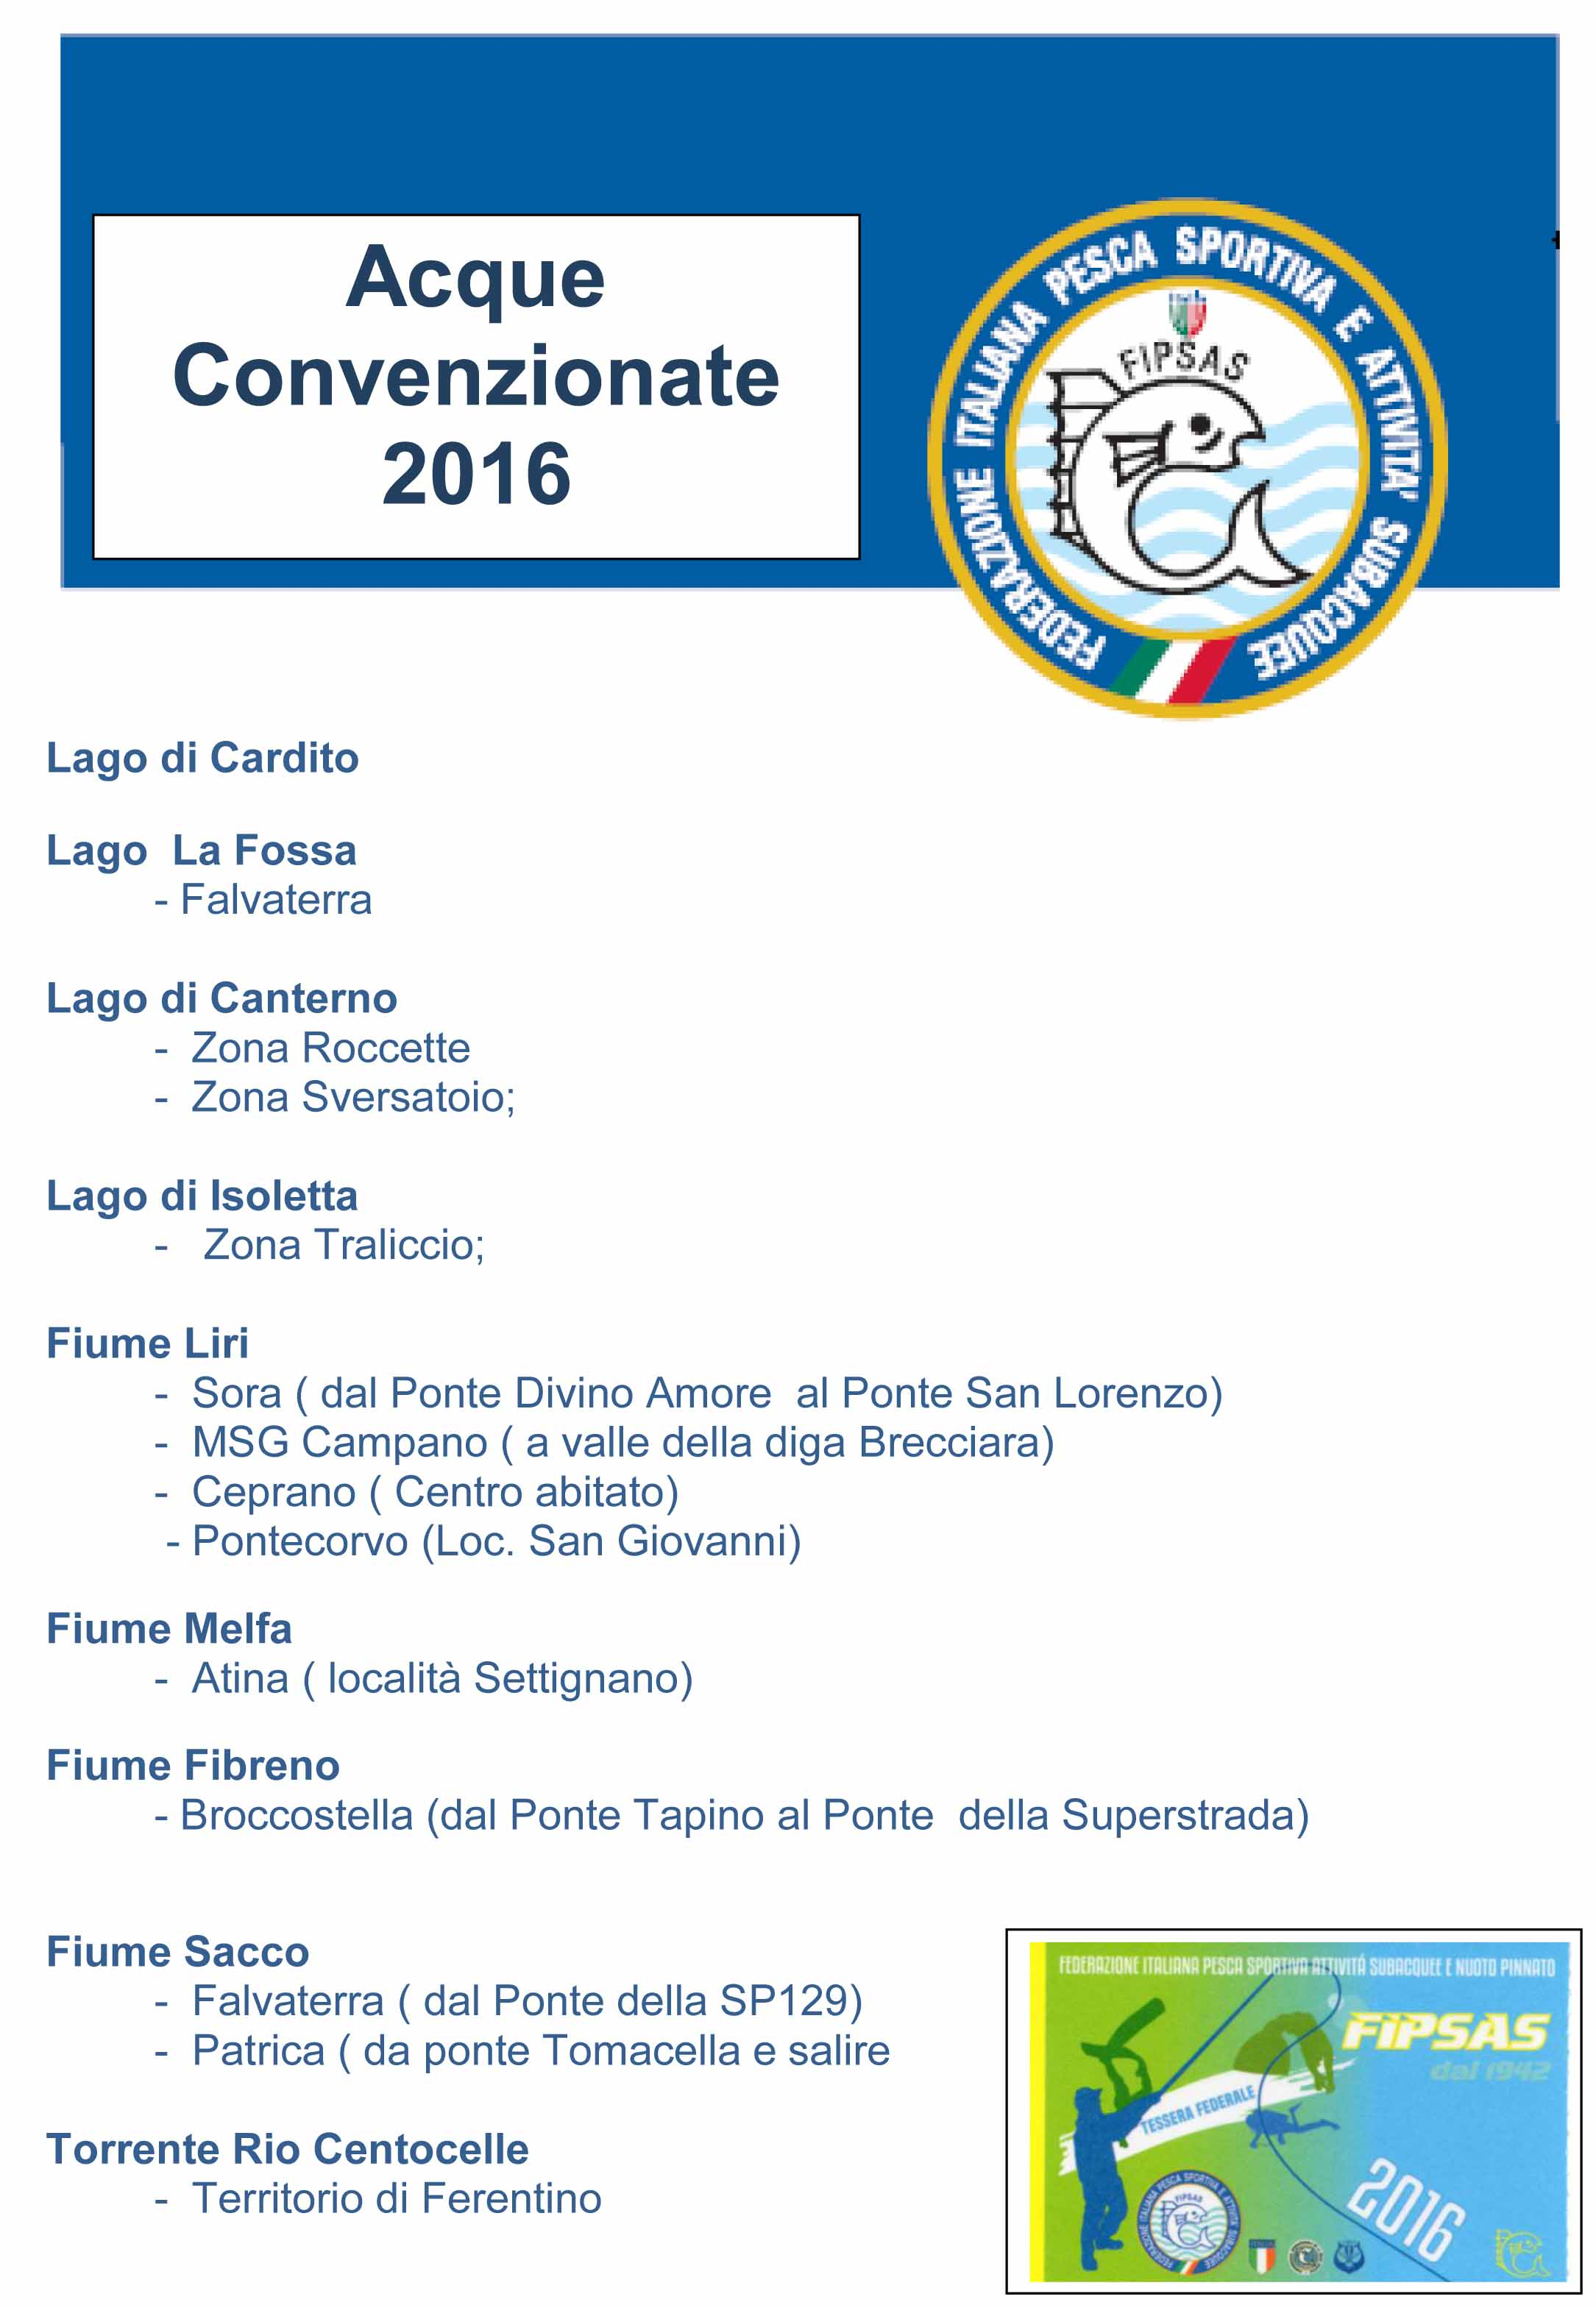 ACQUE IN GESTIONE FIPSAS 2016